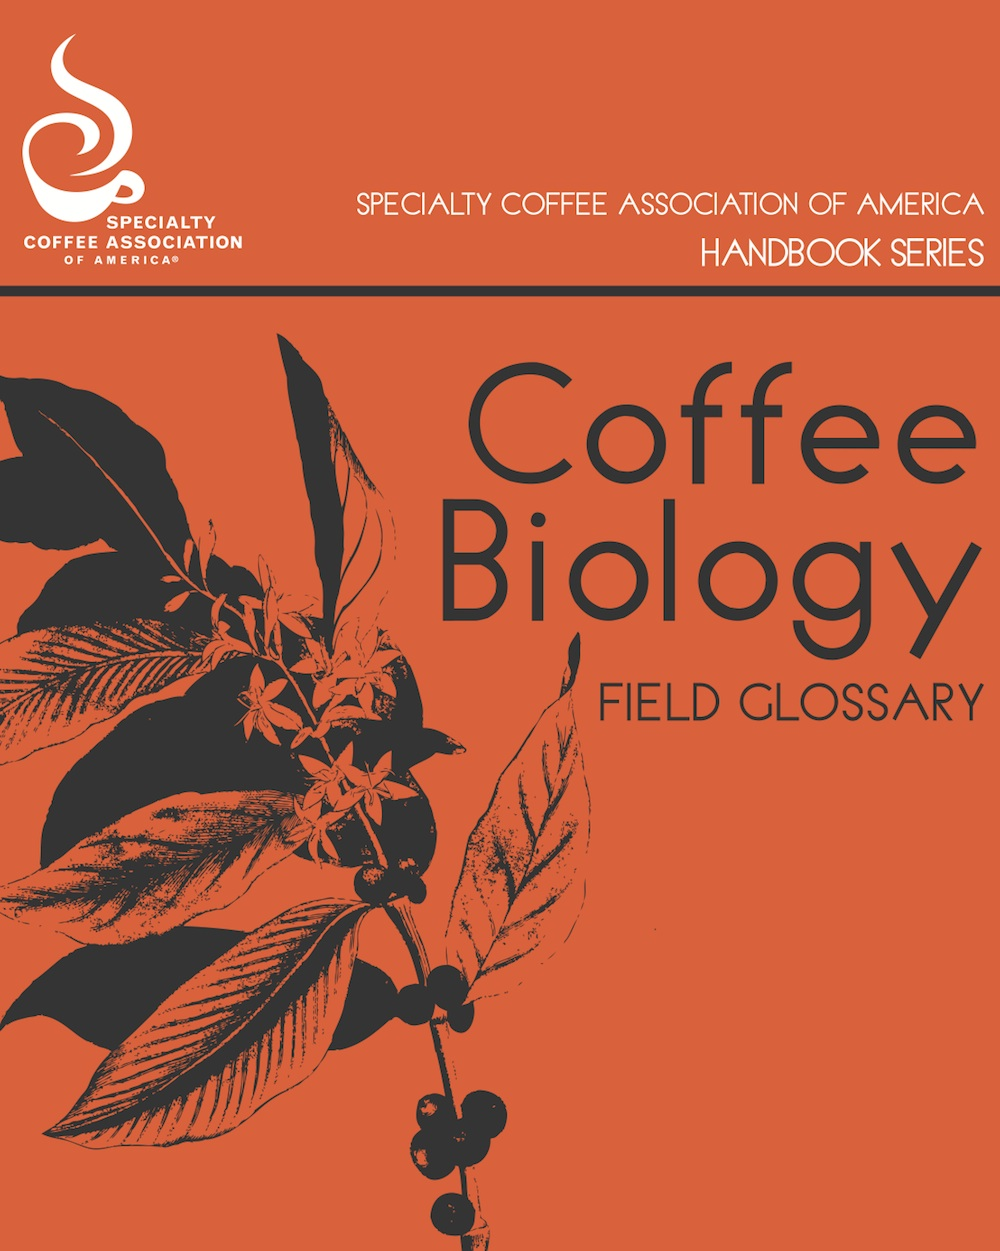 Scaa Coffee Field Biology Glossary Handbook